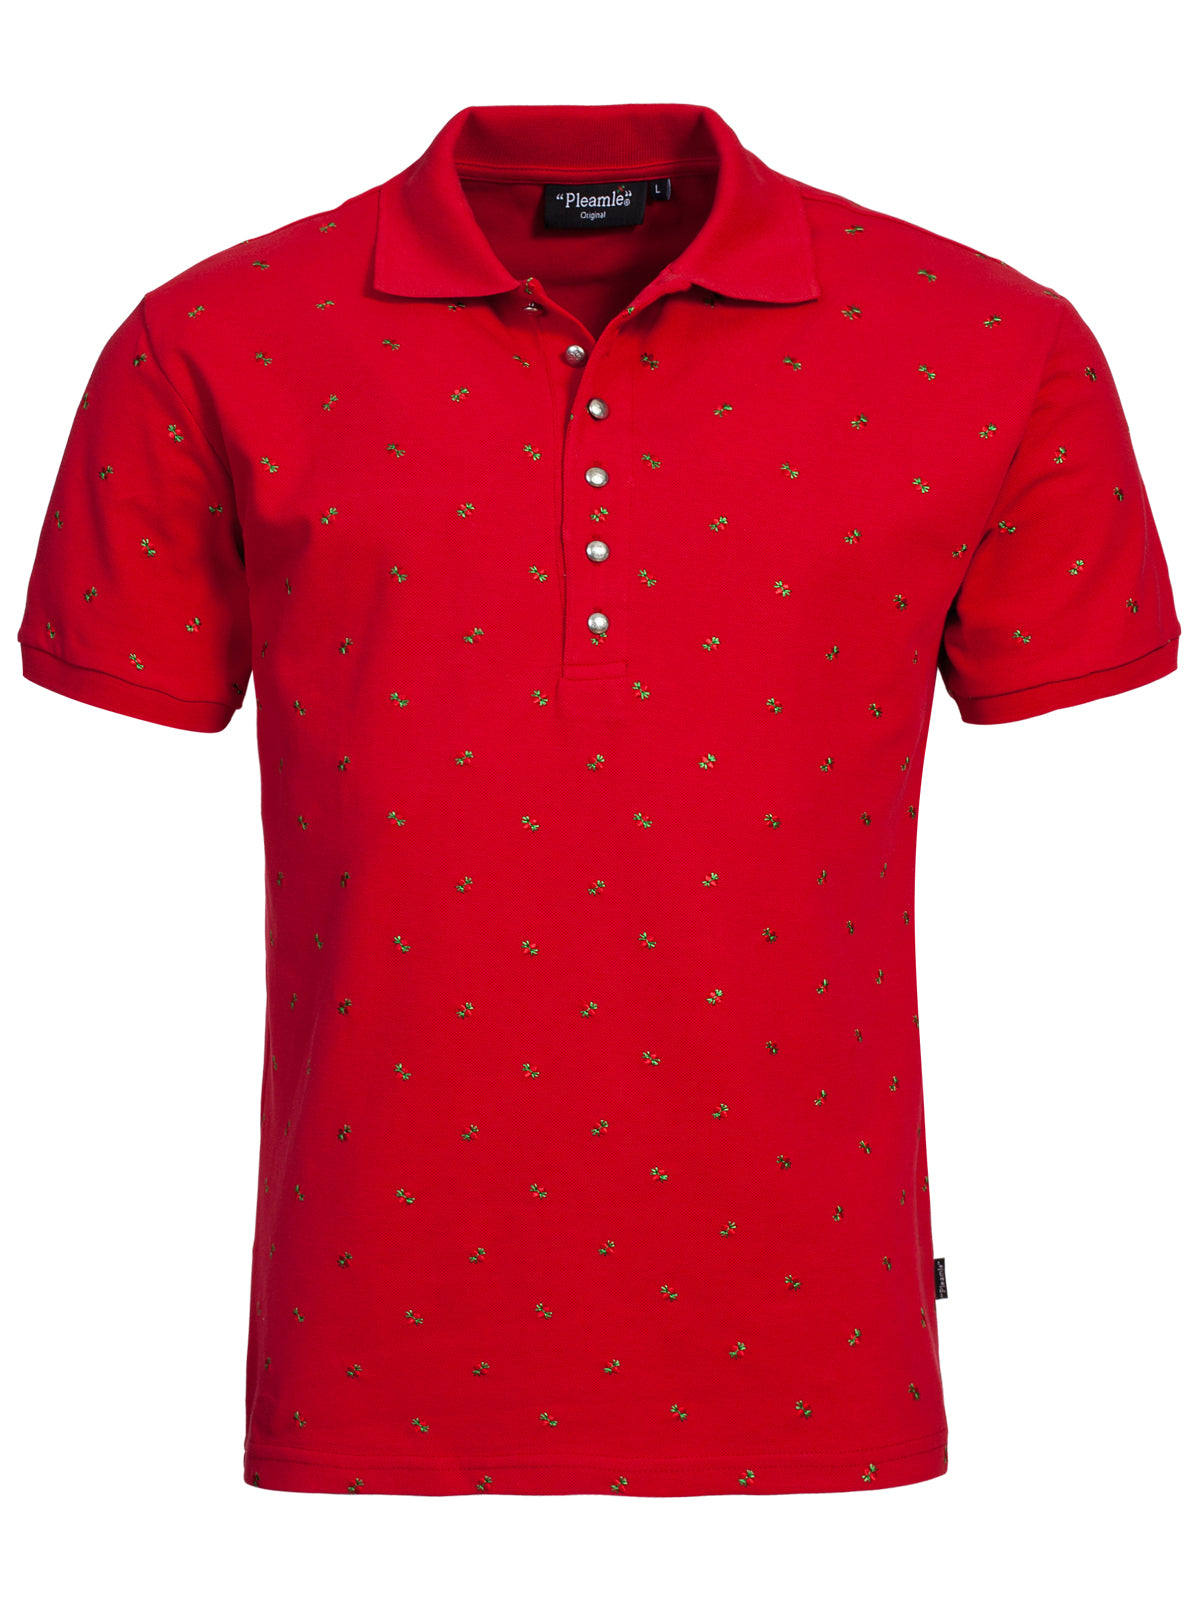 Pleamle Herren Polo kurzarm rot original